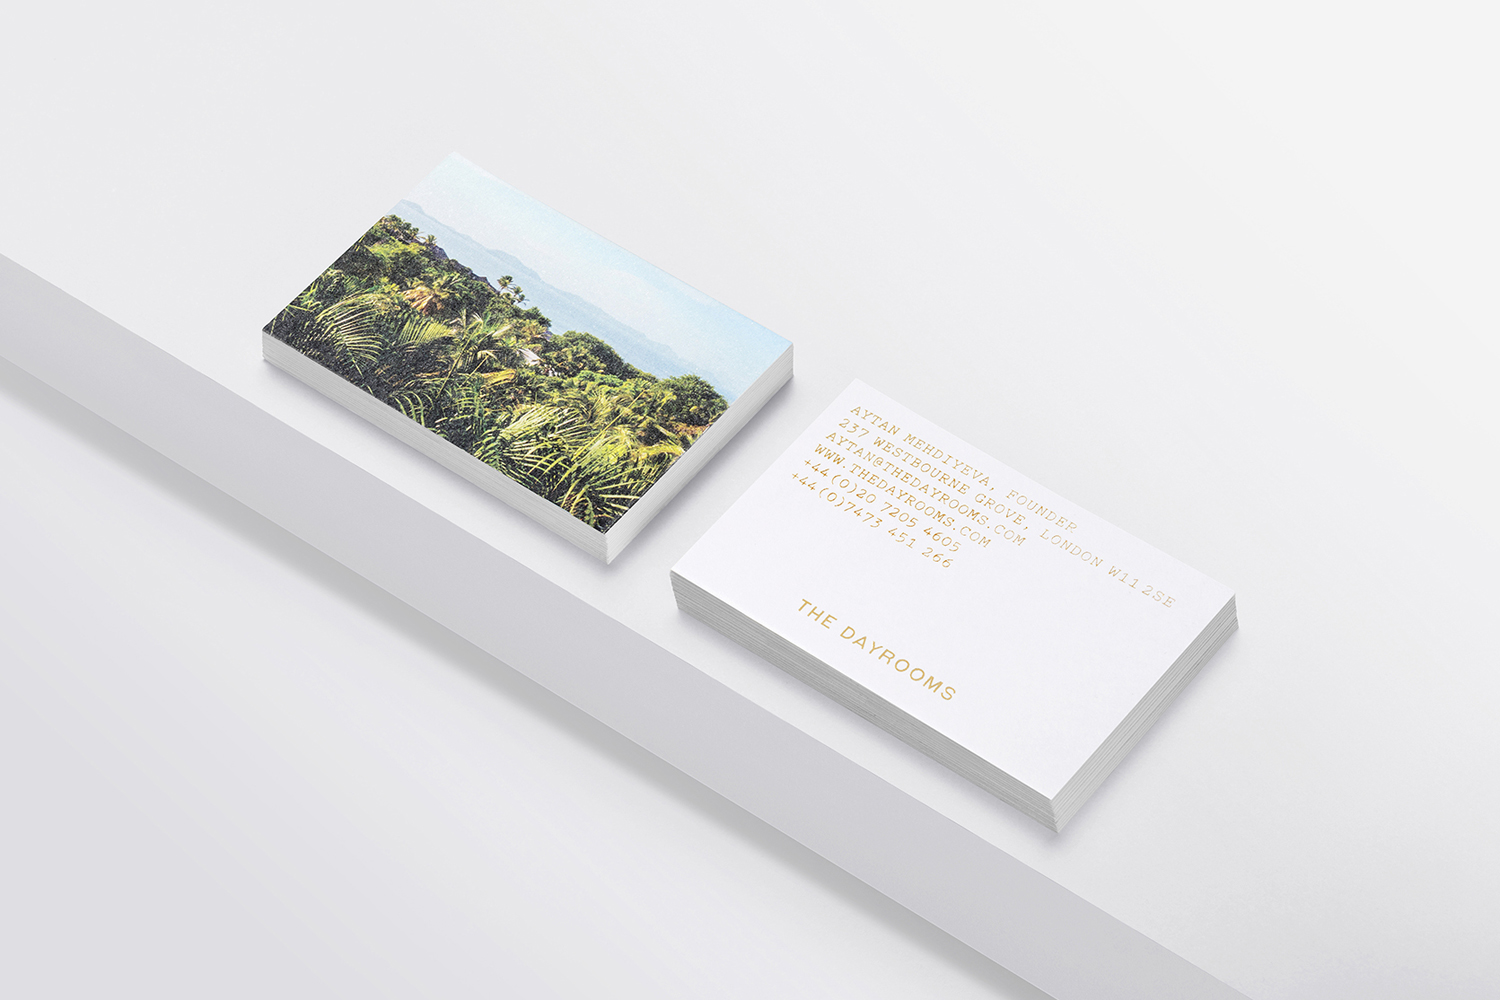 Business Card Design Ideas – The Dayrooms by Two Times Elliott, United Kingdom